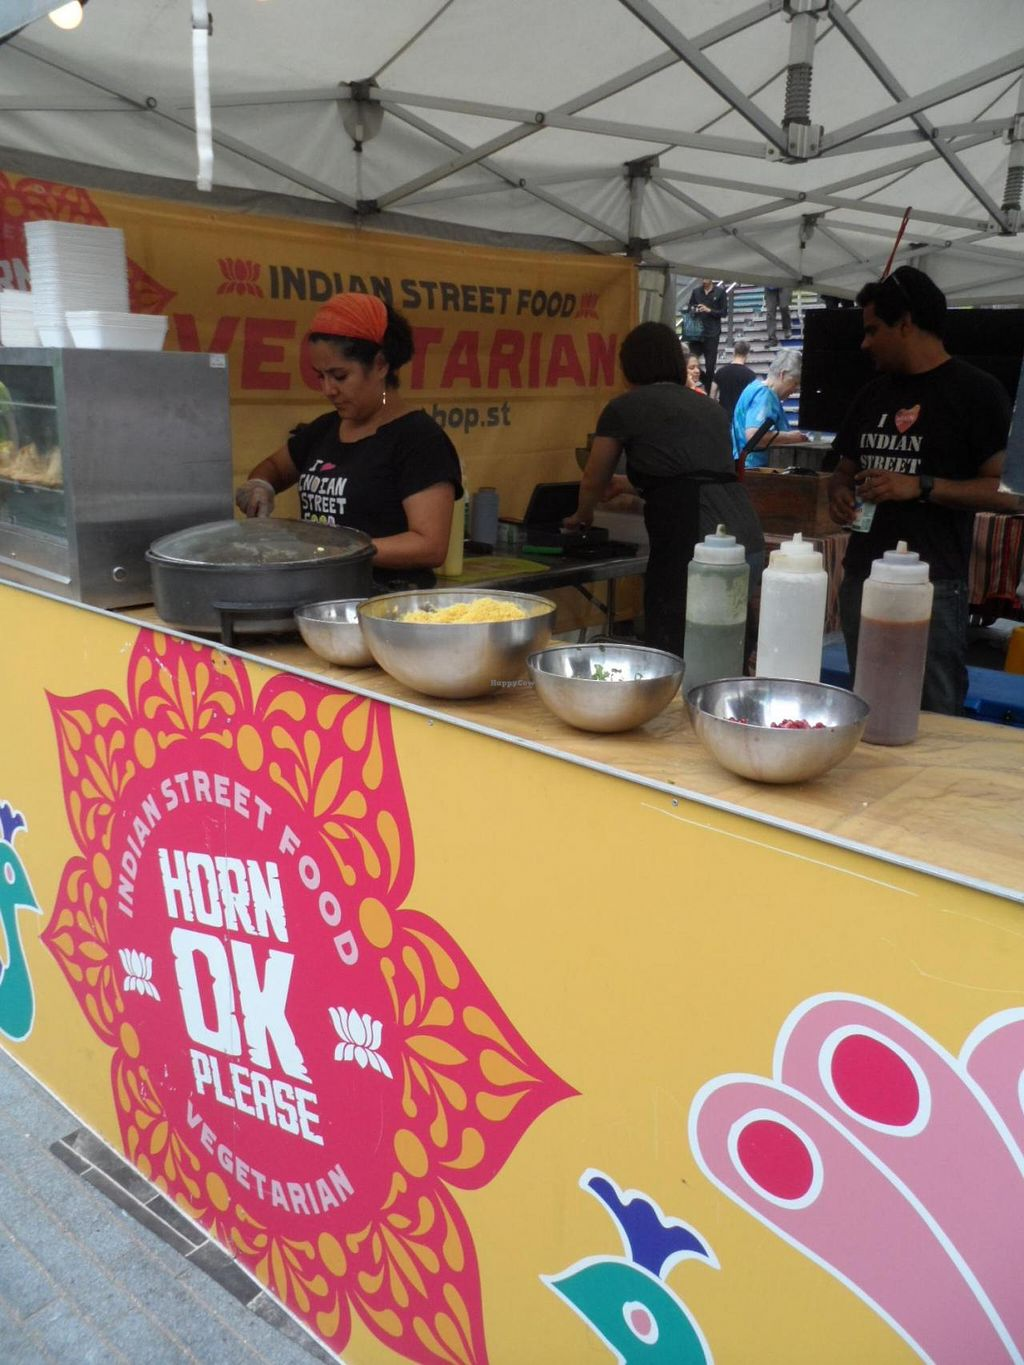 """Photo of Horn Ok Please - Food Stall  by <a href=""""/members/profile/Clare"""">Clare</a> <br/>Side of Stall <br/> June 26, 2015  - <a href='/contact/abuse/image/59959/107422'>Report</a>"""